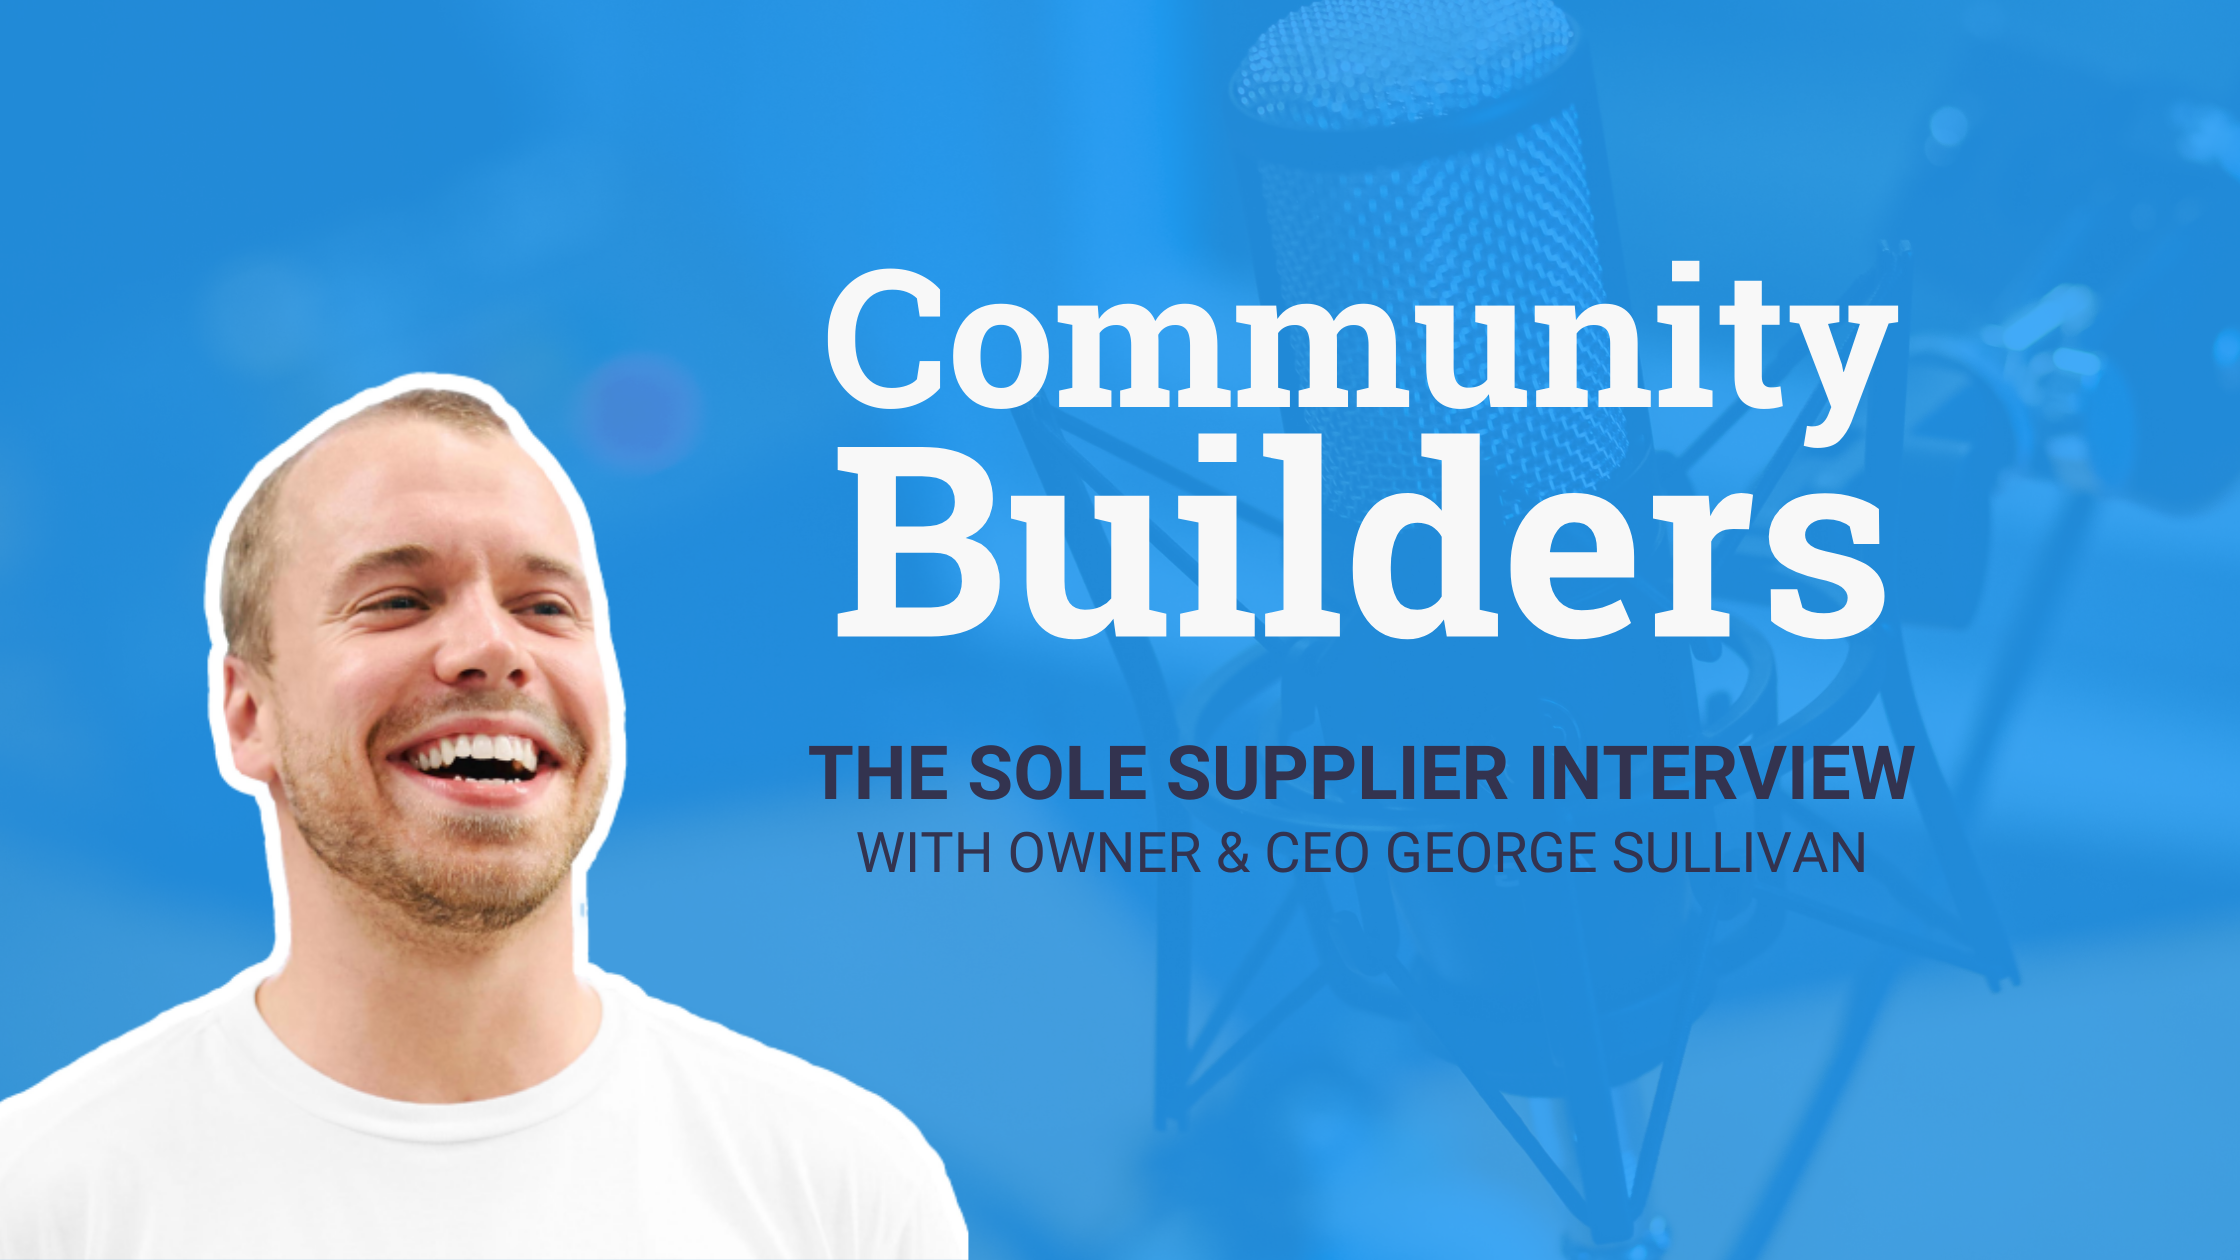 The Sole Supplier community interview with George Sullivan